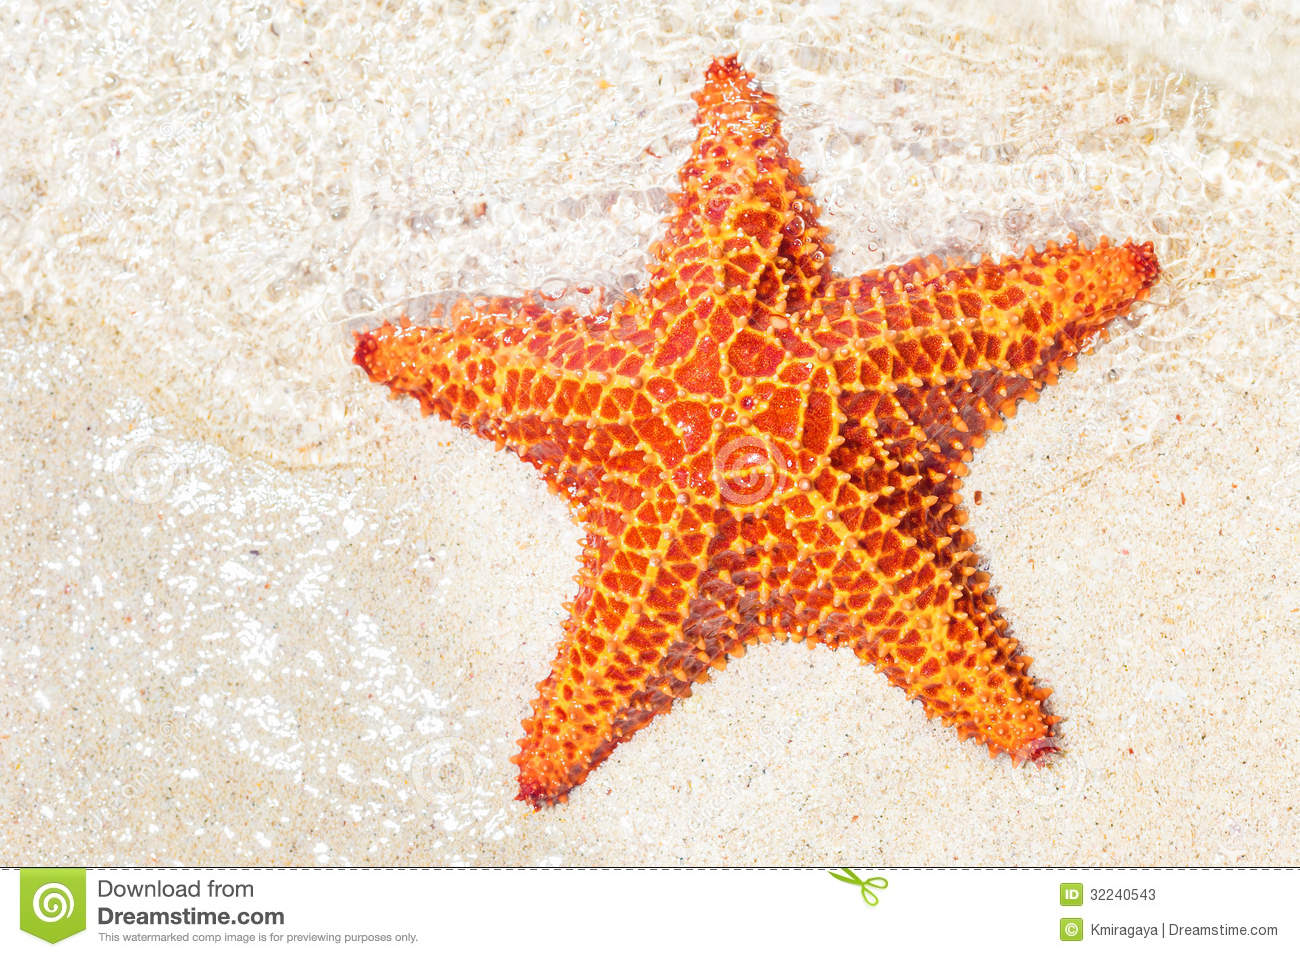 Starfish (sea Star) Near The Shore Of A Tropical Beach